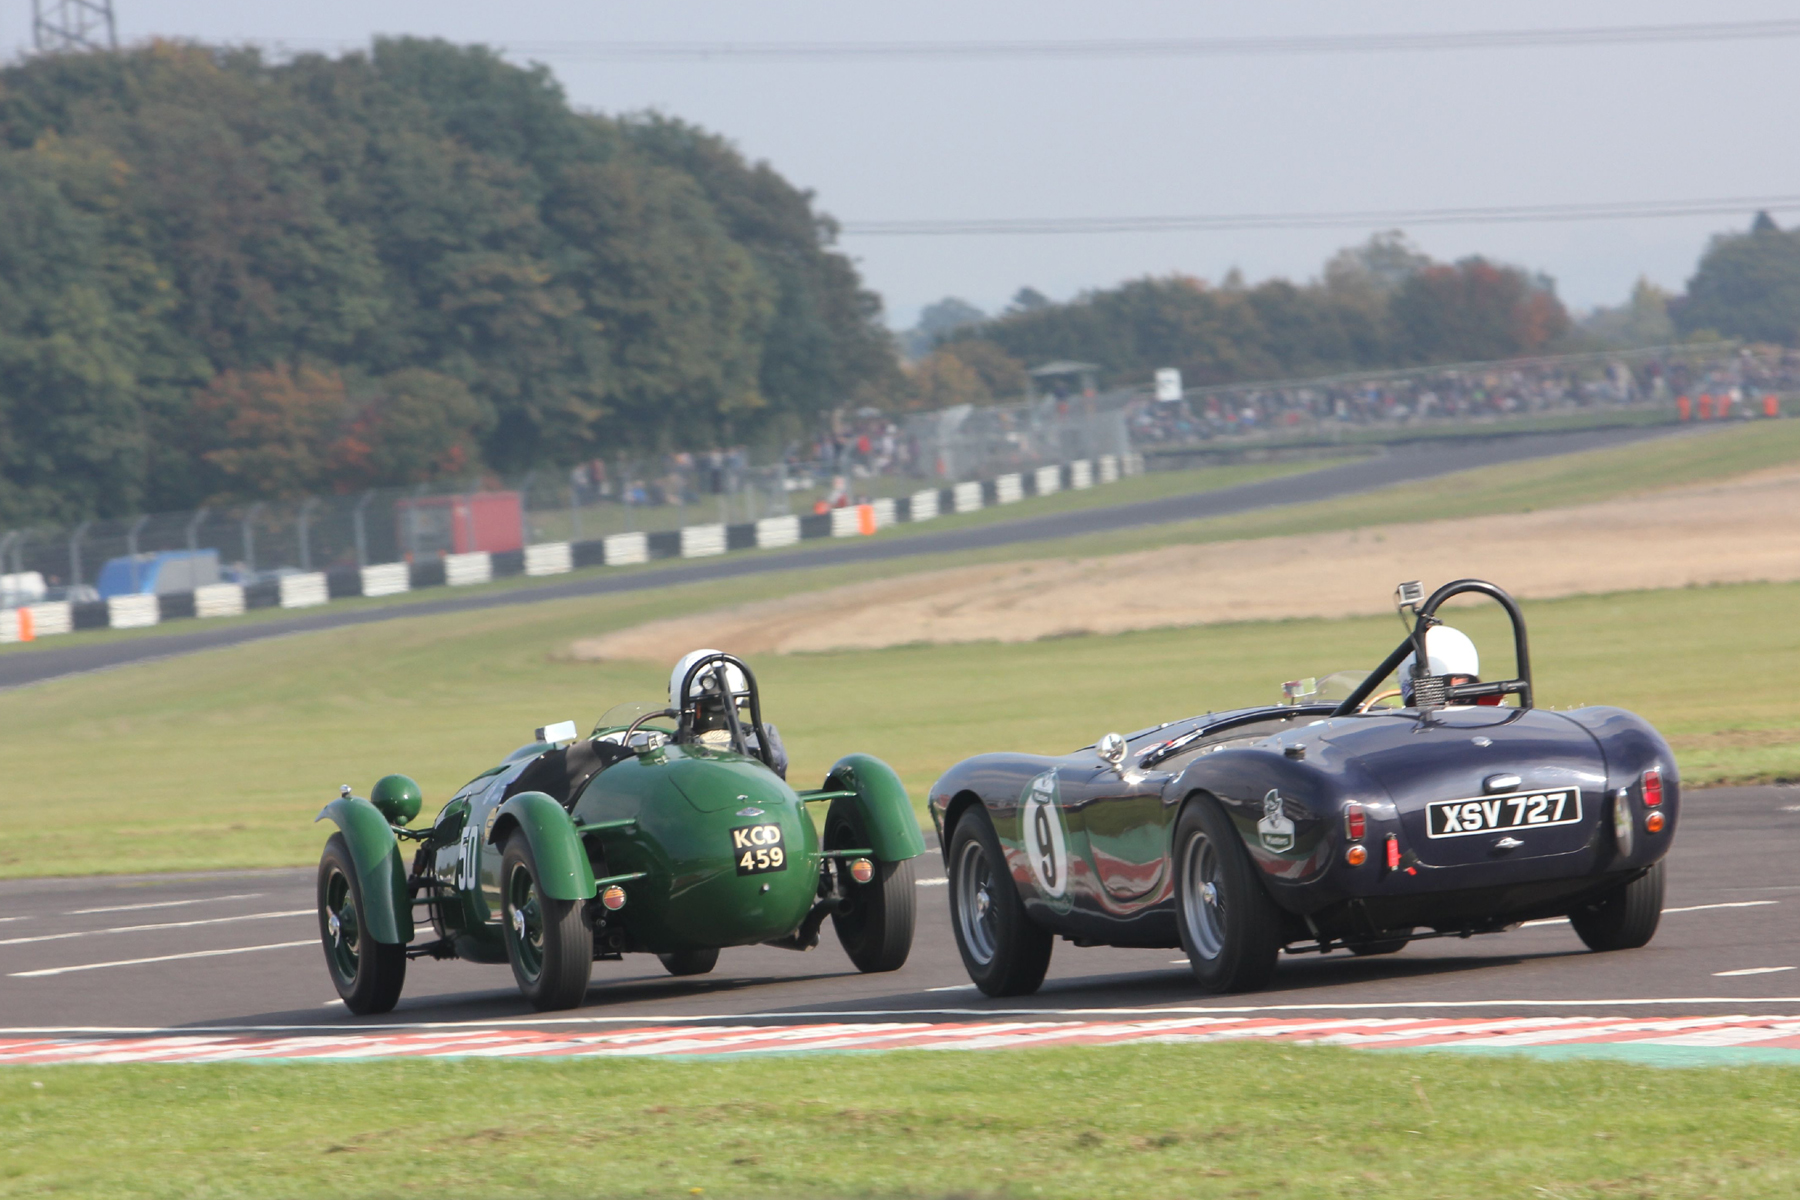 Martin Hunt (Frazer Nash Le Mans Replica) and Ted Murray (AC Ace), lying at this stage 8th and 9th head down the pit straight towards Folly which appears a much more accentuated corner from this angle than it does from most spectator viewpoints and is probably the fastest part of the circuit. The track section above the drivers heads is called appropriately Avon Rise followed by the gentle left hander into the difficult right hander, called Quarry.  Photo- Pat Arculus, Tripos Media